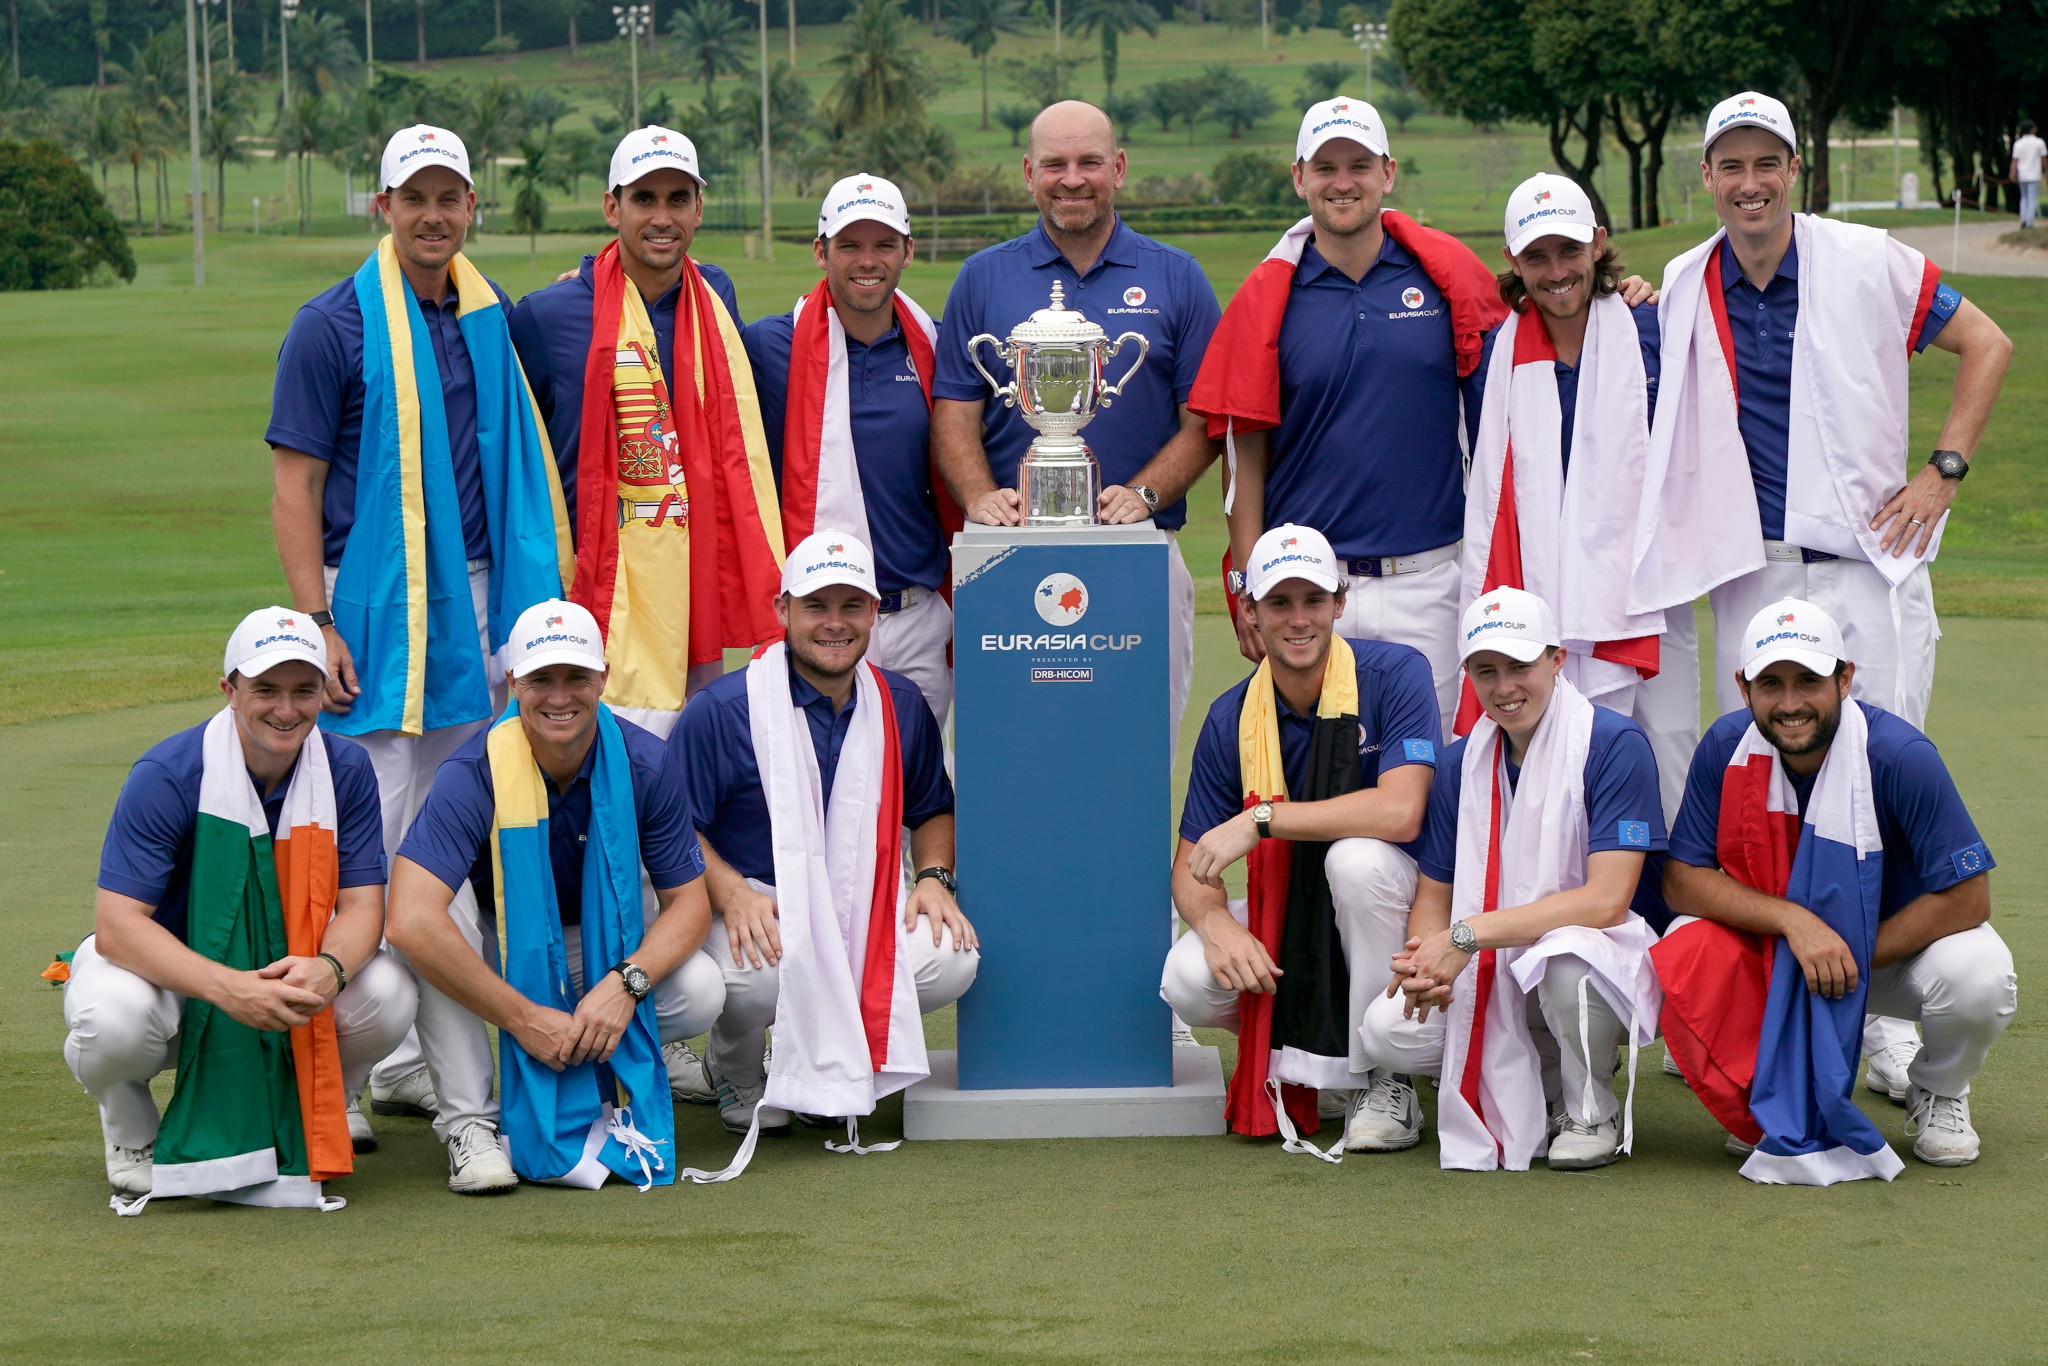 China's Li Haotong helps Team Asia lead in Eurasia Cup